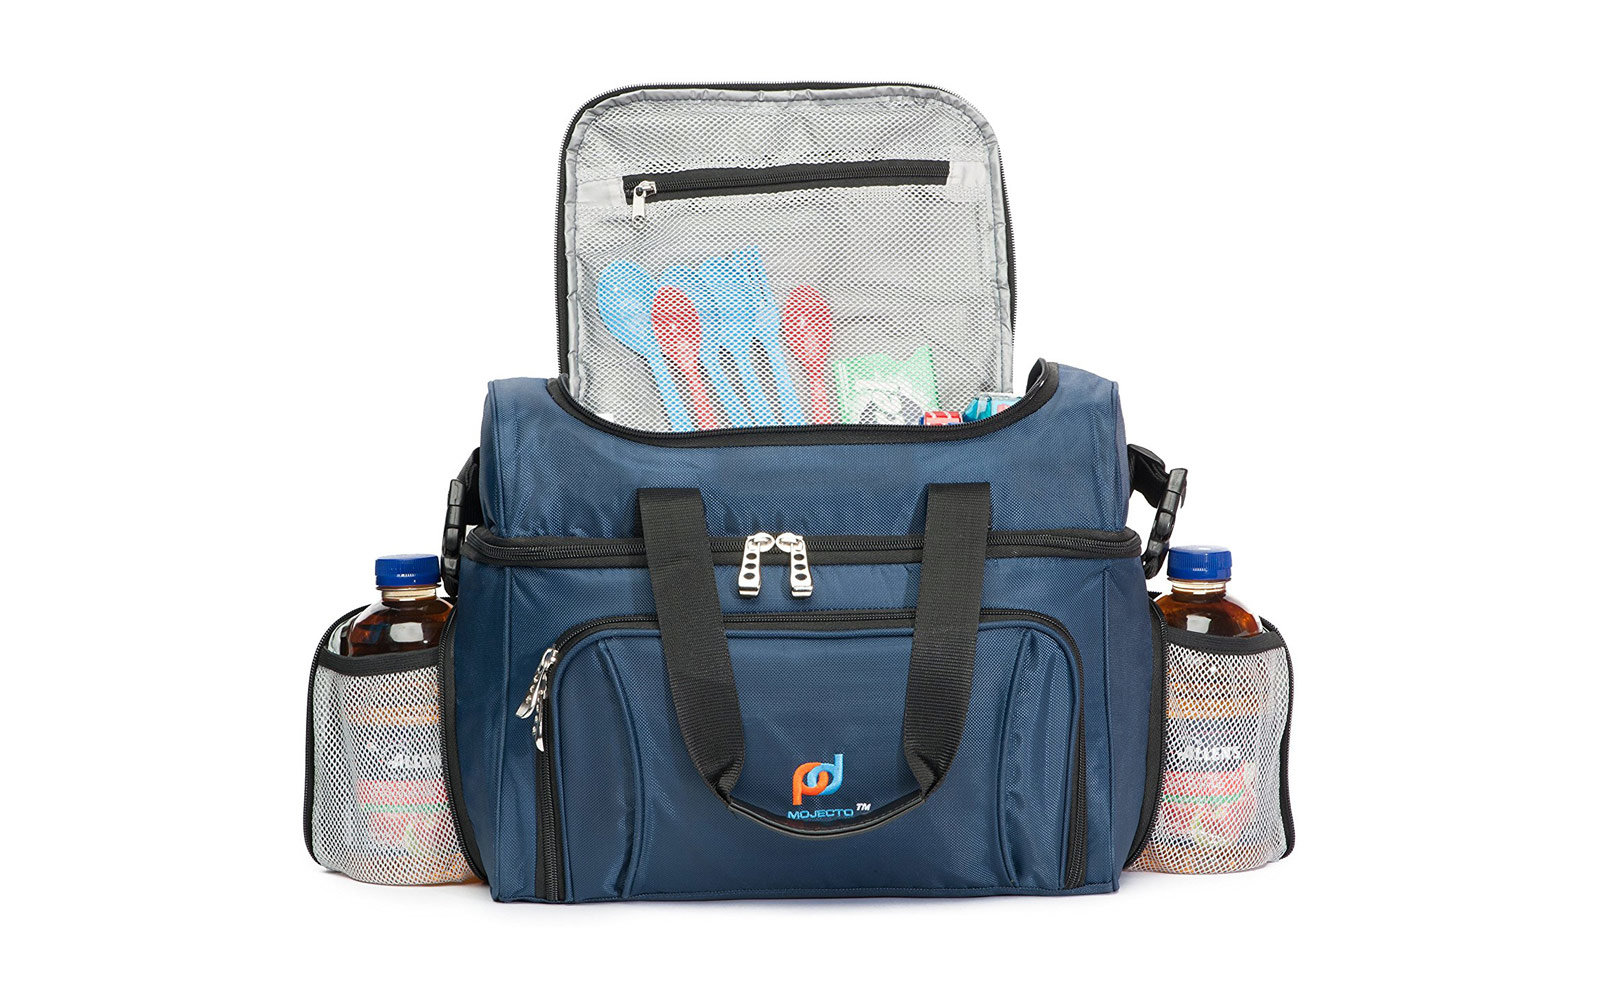 Esky Cooler Bag The Best Insulated Cooler Bags For Travel Travel Leisure